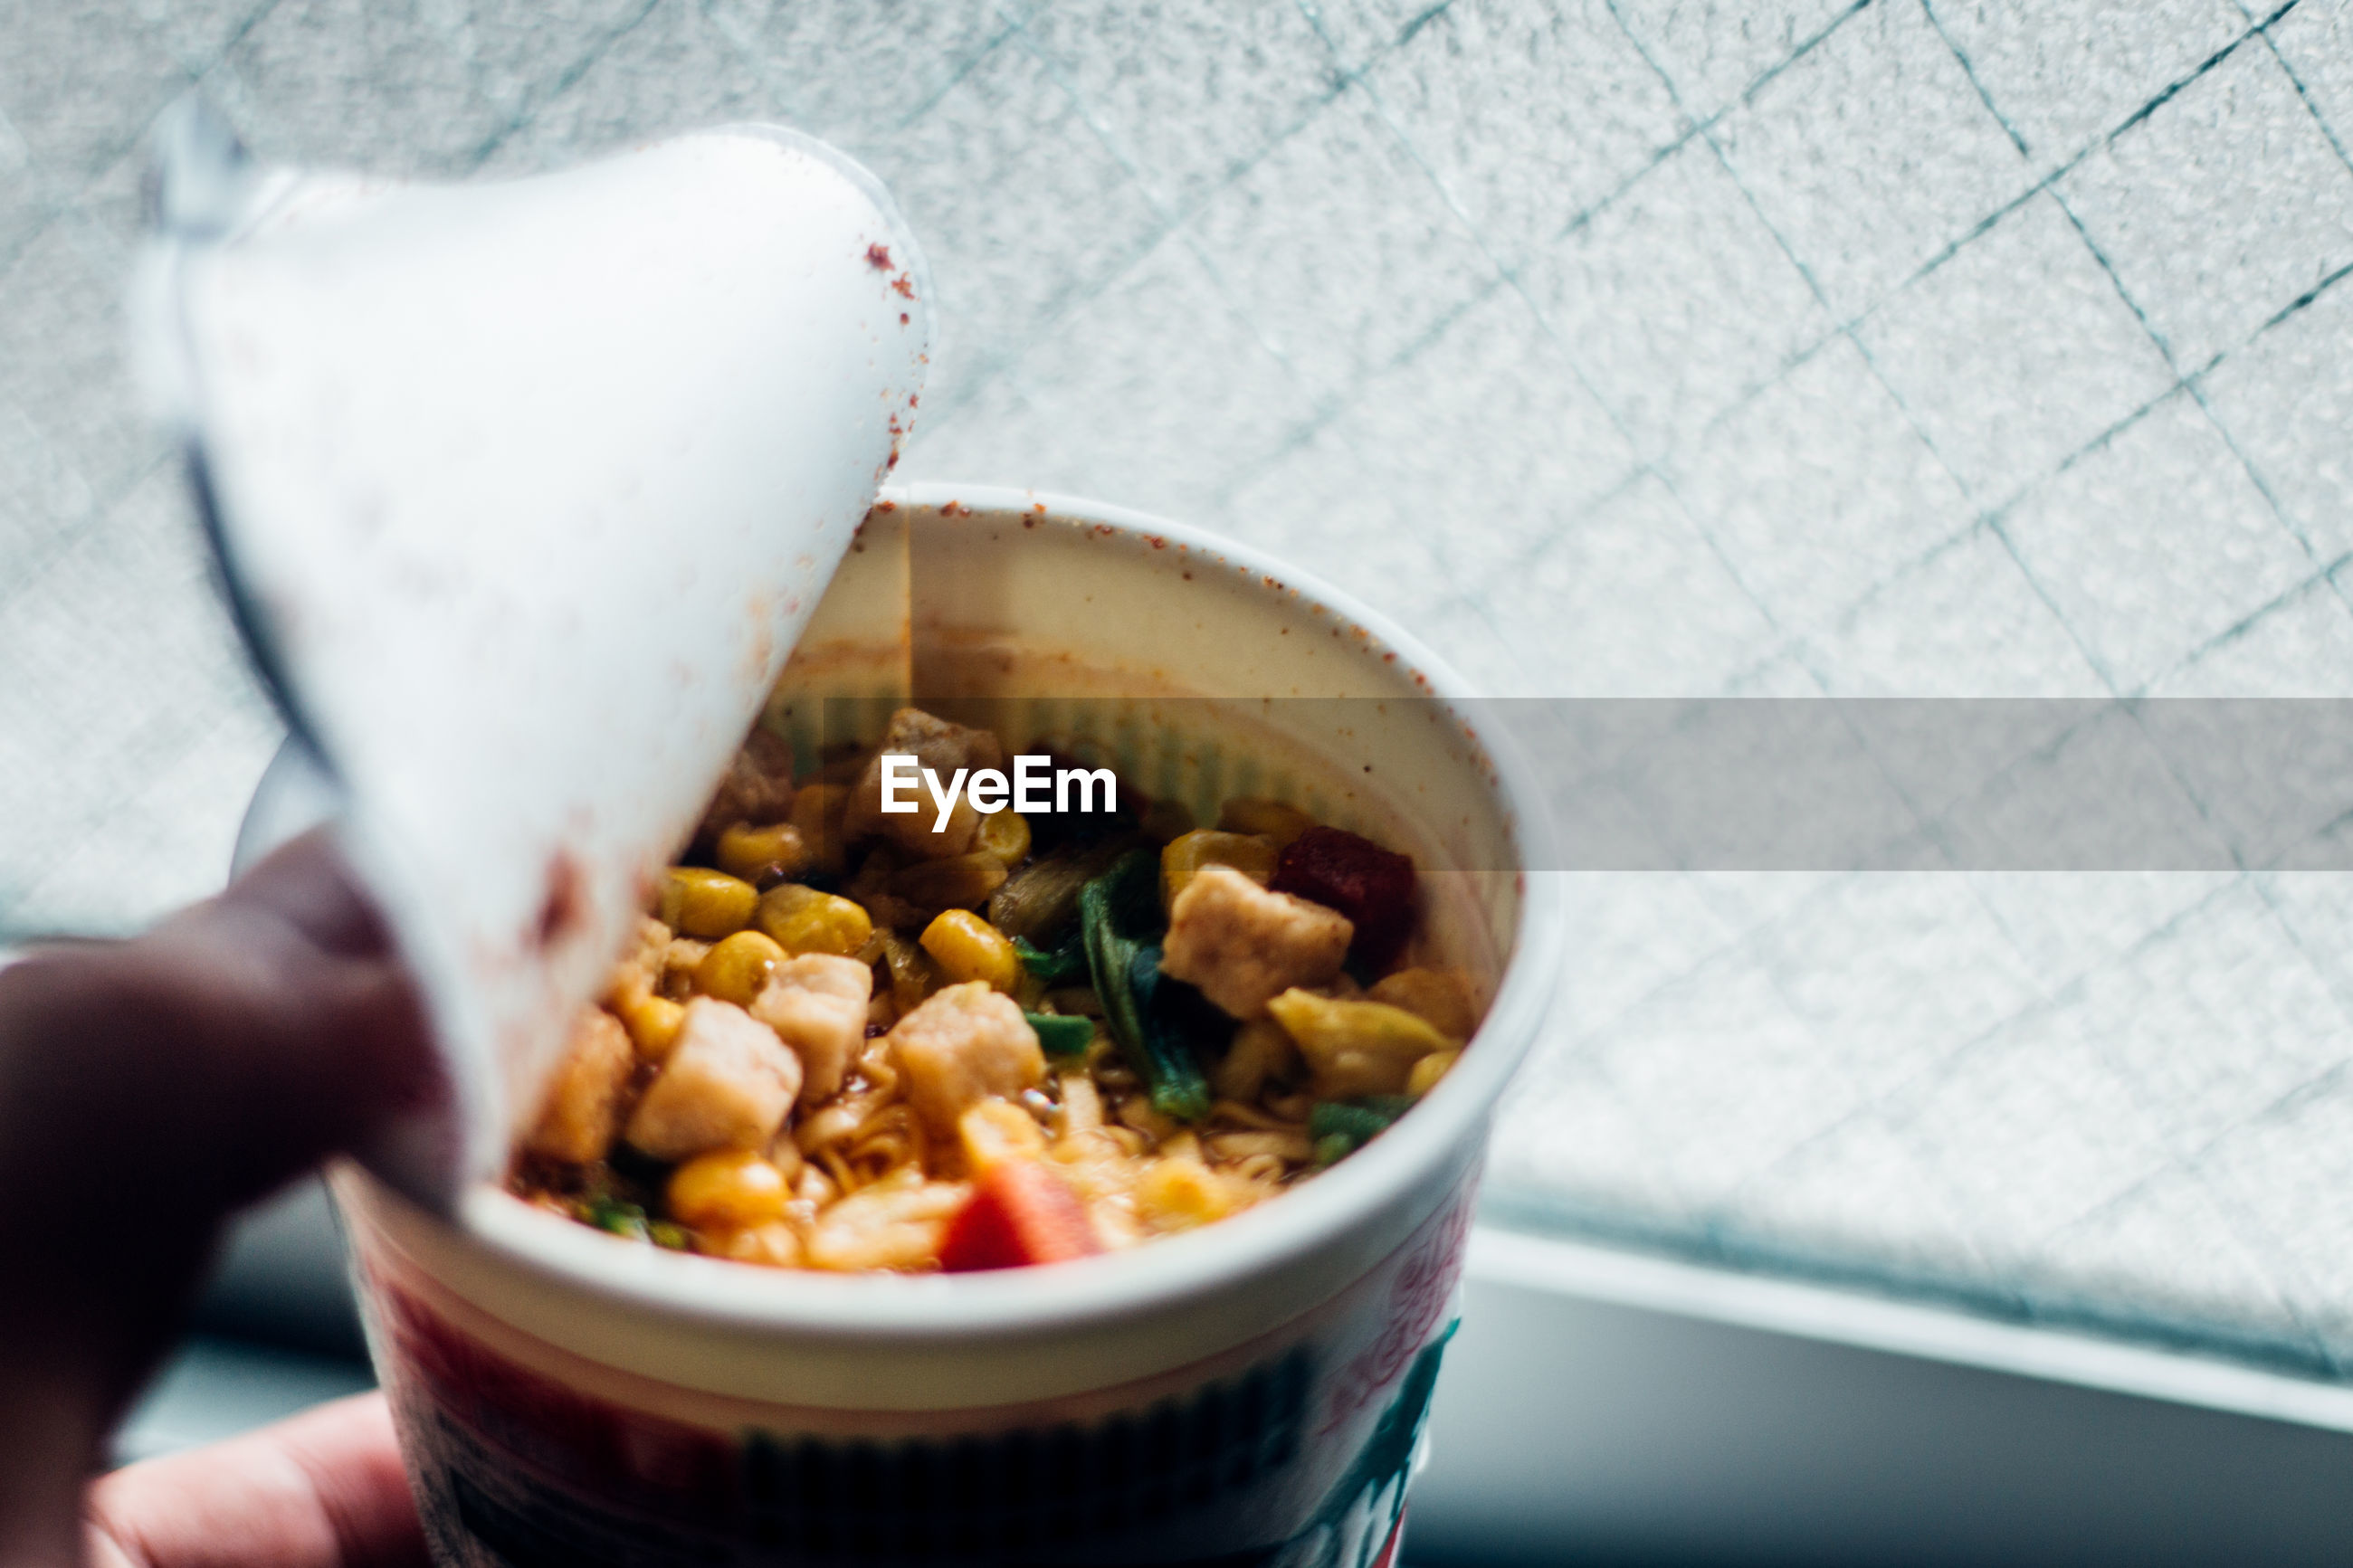 Cropped fingers of person holding food in container by window